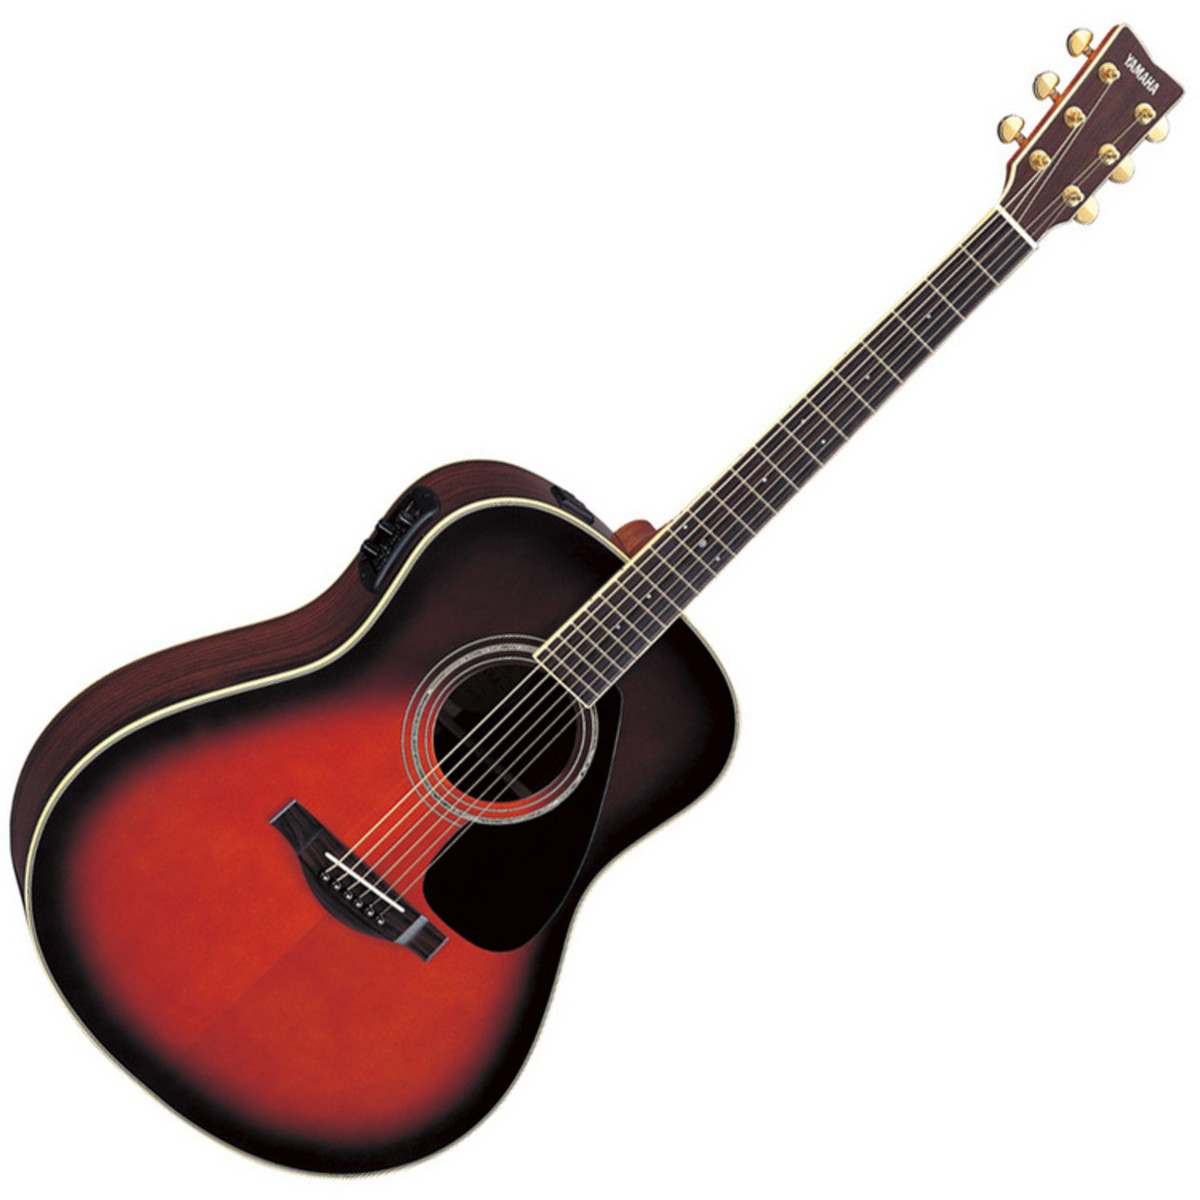 Yamaha llx6a electro acoustic guitar tobacco sunburst for Yamaha acoustic bass guitar